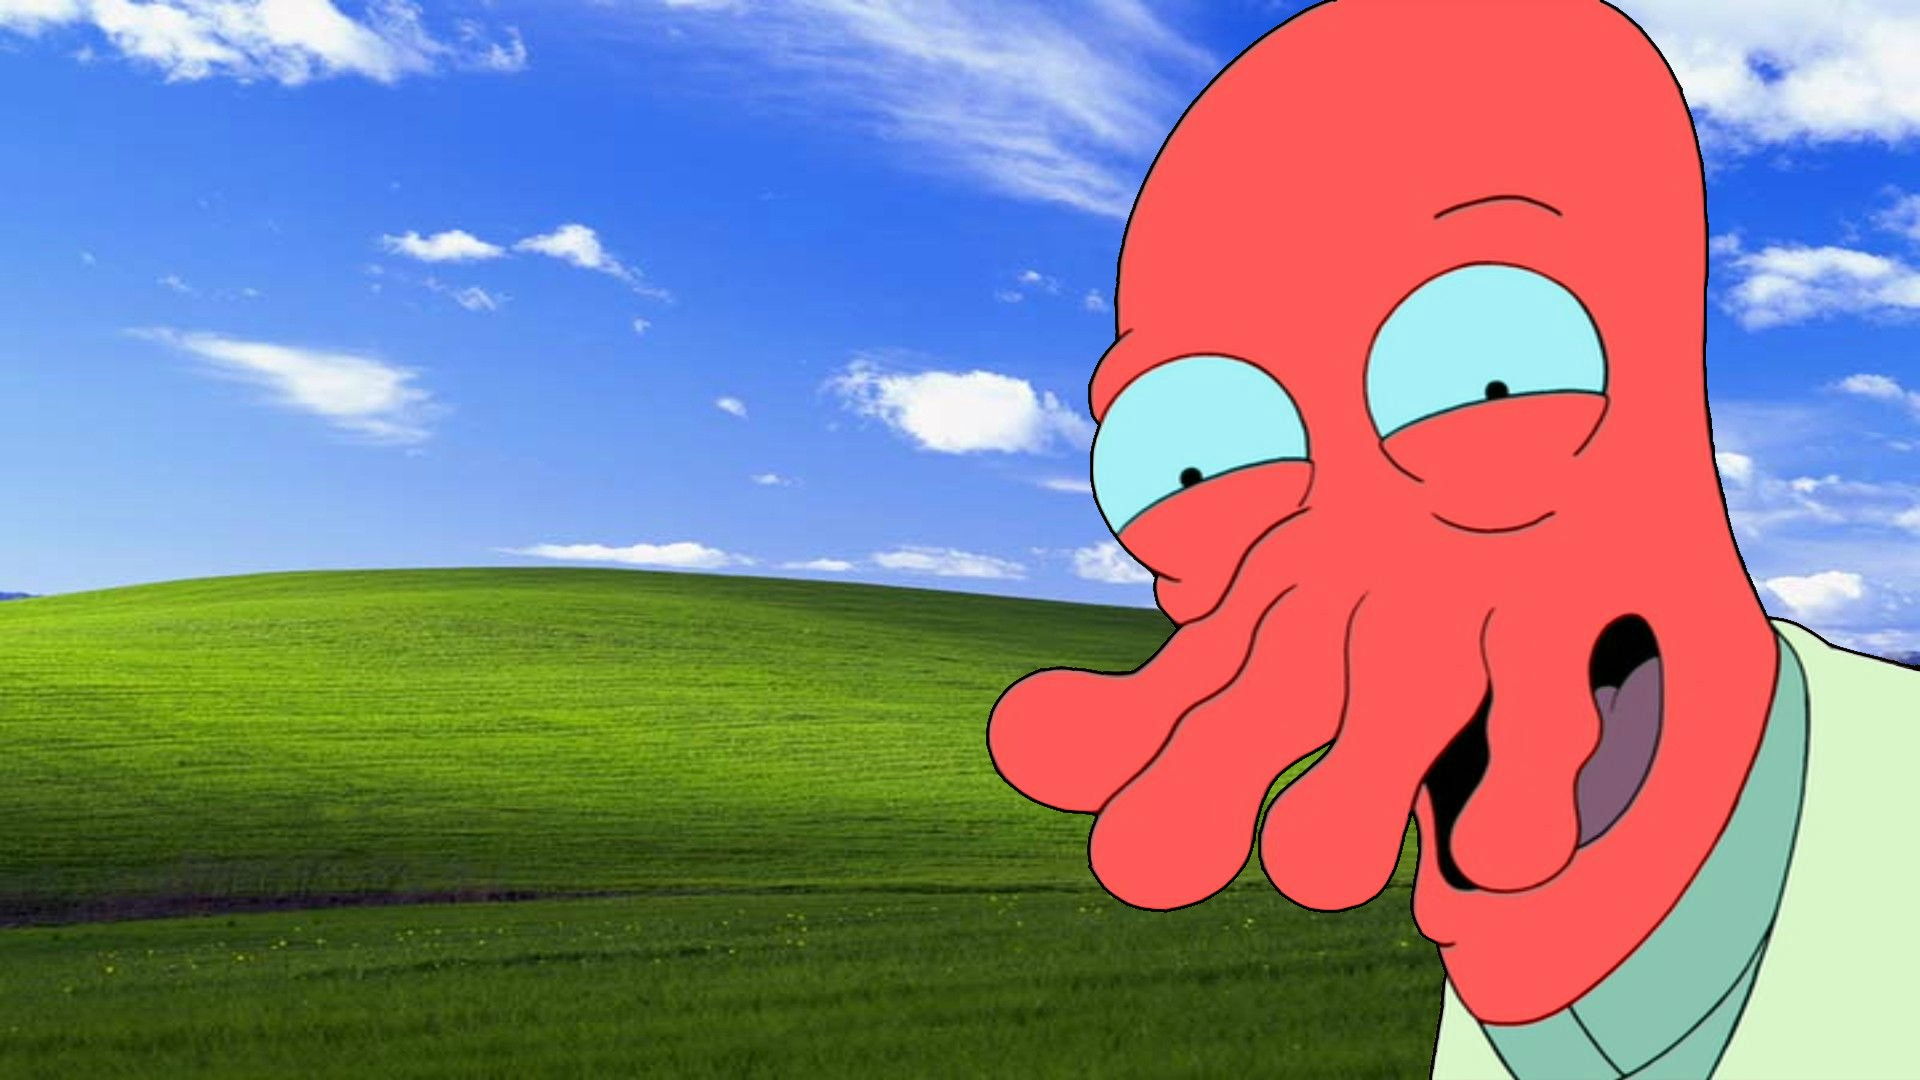 futurama Full HD Wallpaper and Background | 1920x1080 | ID ... Quotes Backgrounds For Facebook